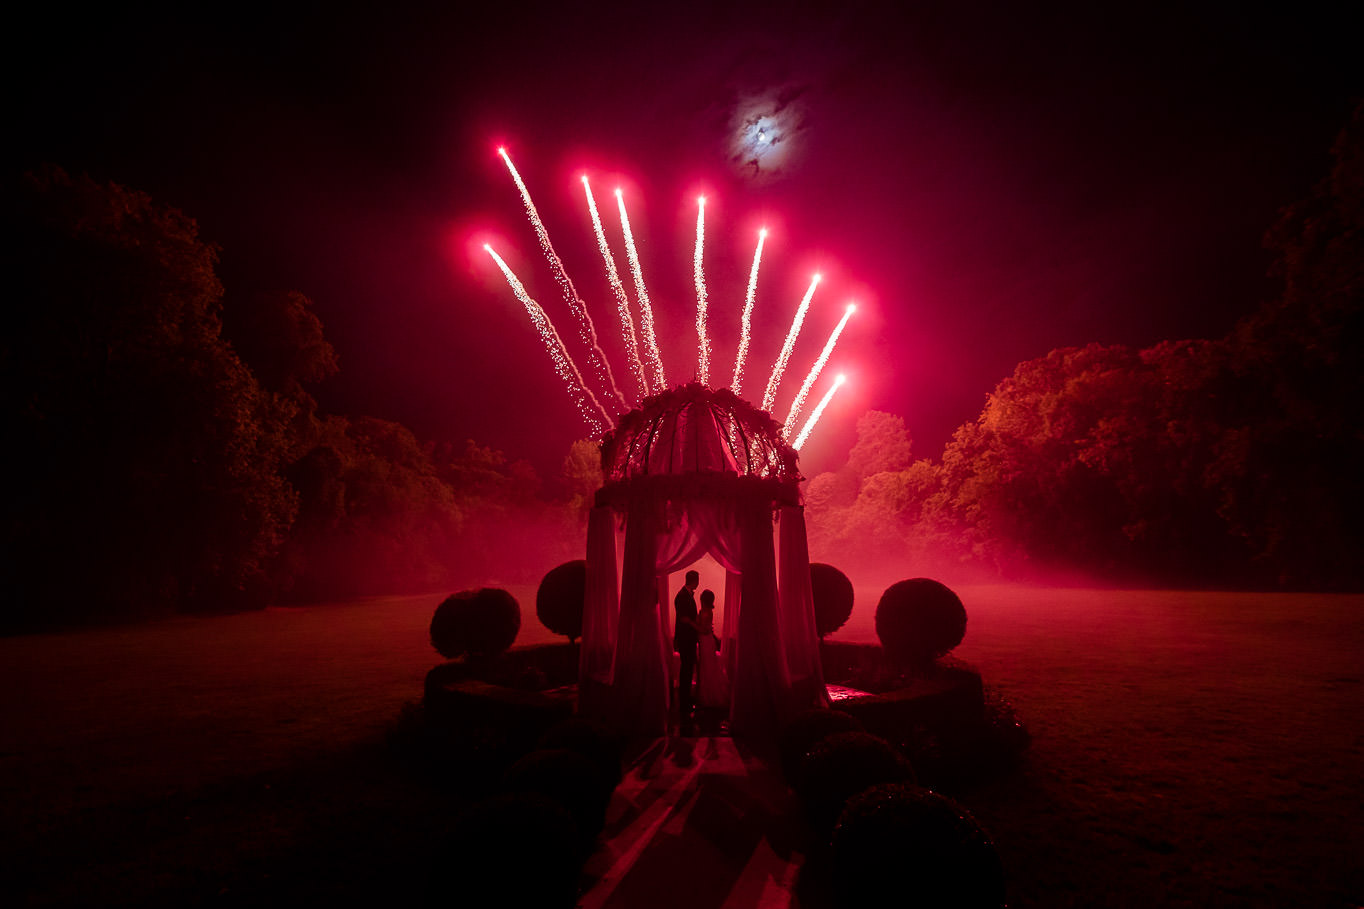 Chateau Challain fireworks at night